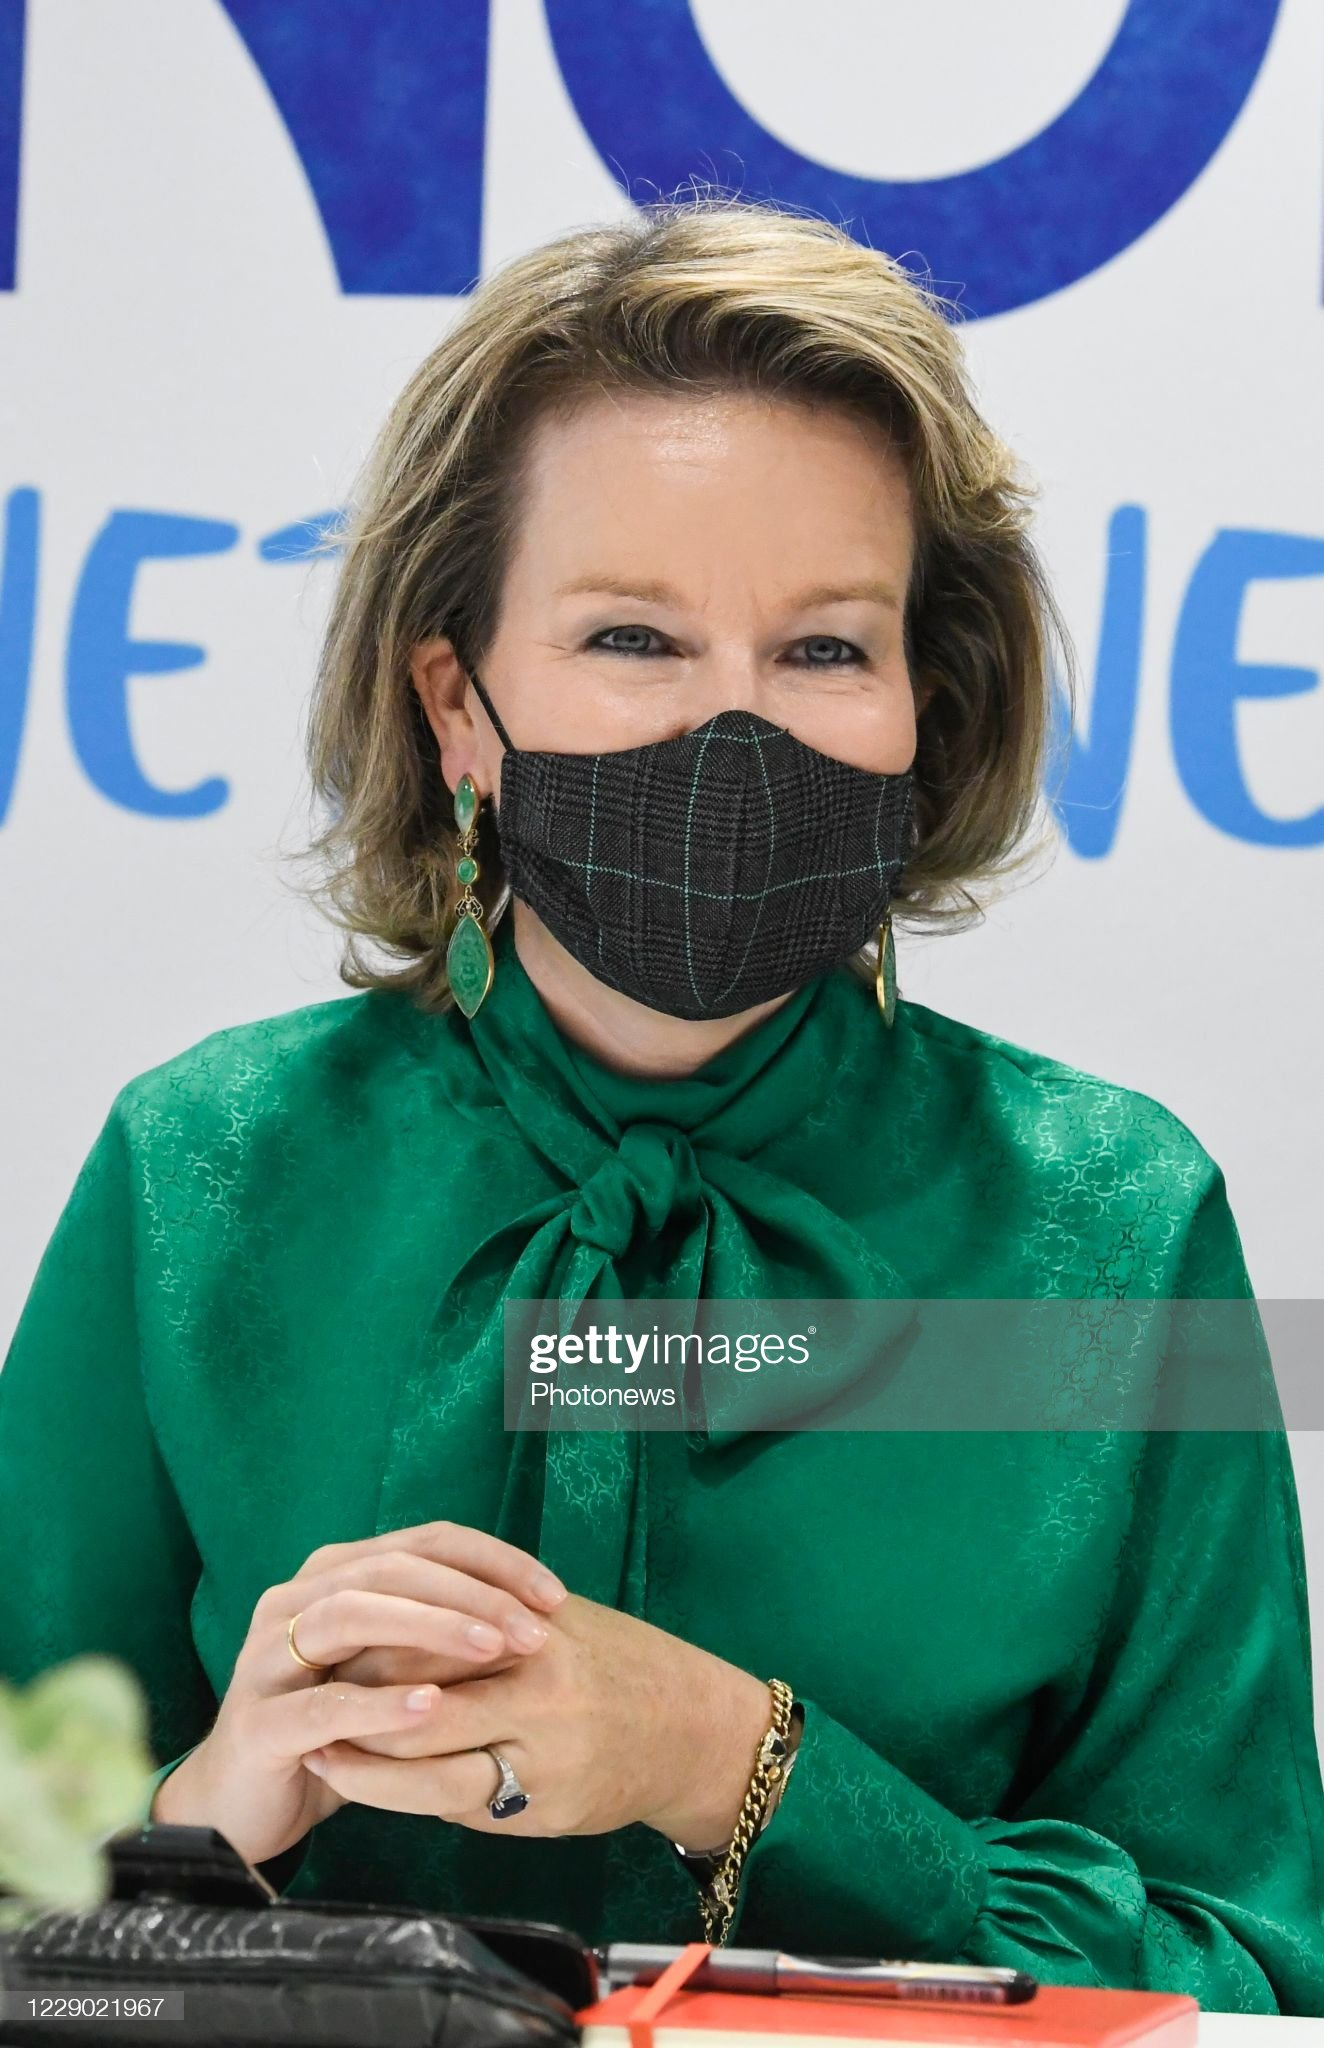 visit-of-queen-mathilde-to-danone-on-occasion-of-a-virtual-event-a-picture-id1229021967